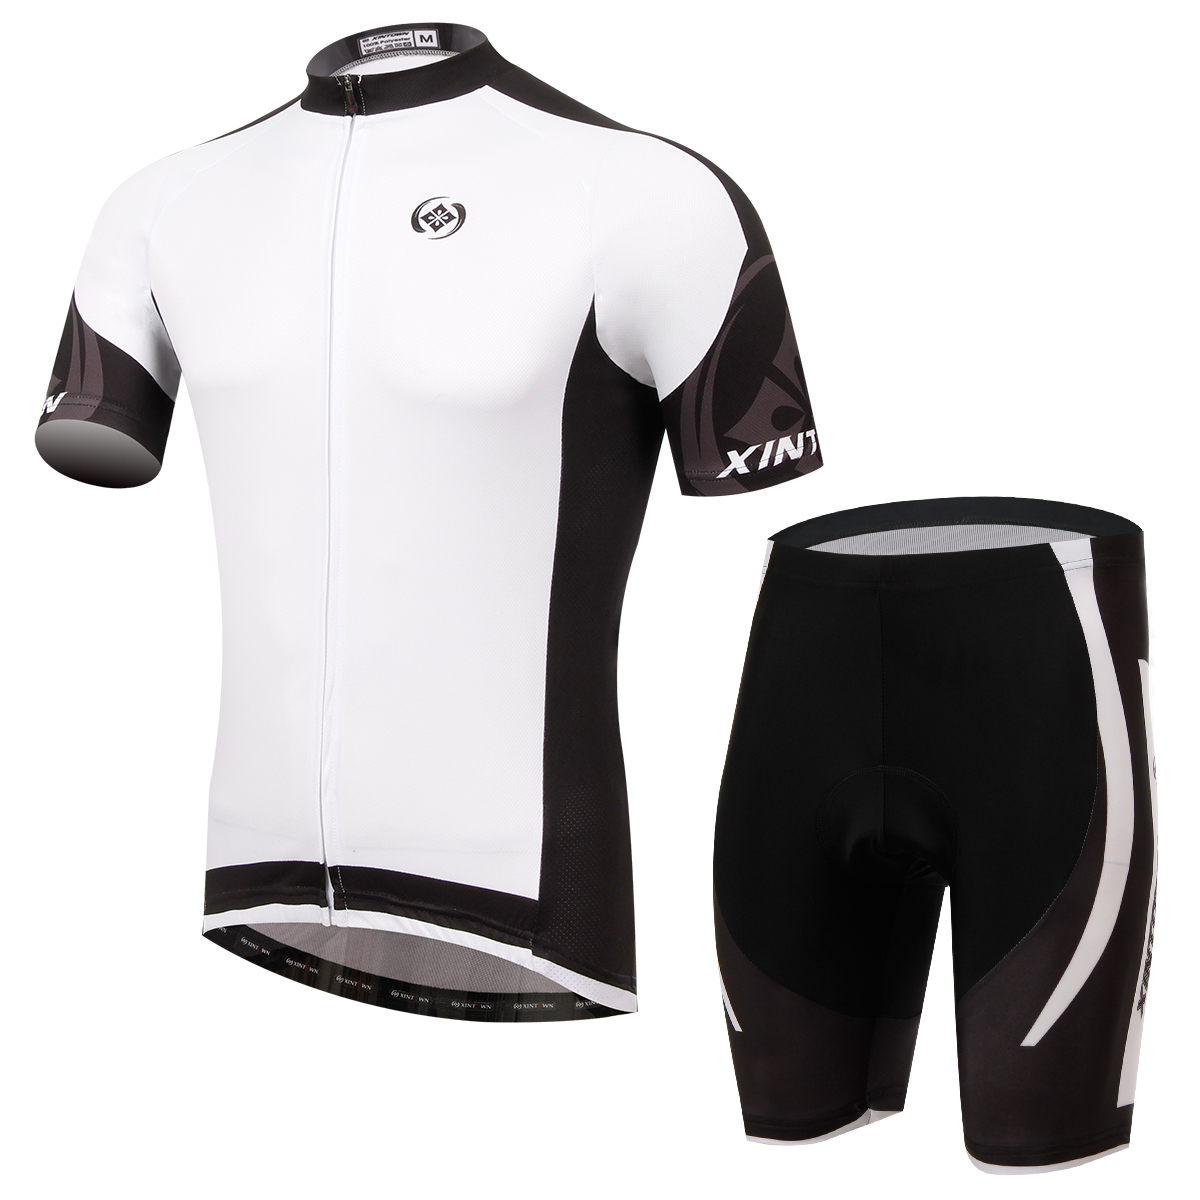 Dimon Men Women Cycling Set Short Sleeve Jersey and Shorts MTB Suits Roupa Ciclismo 100 Polyester